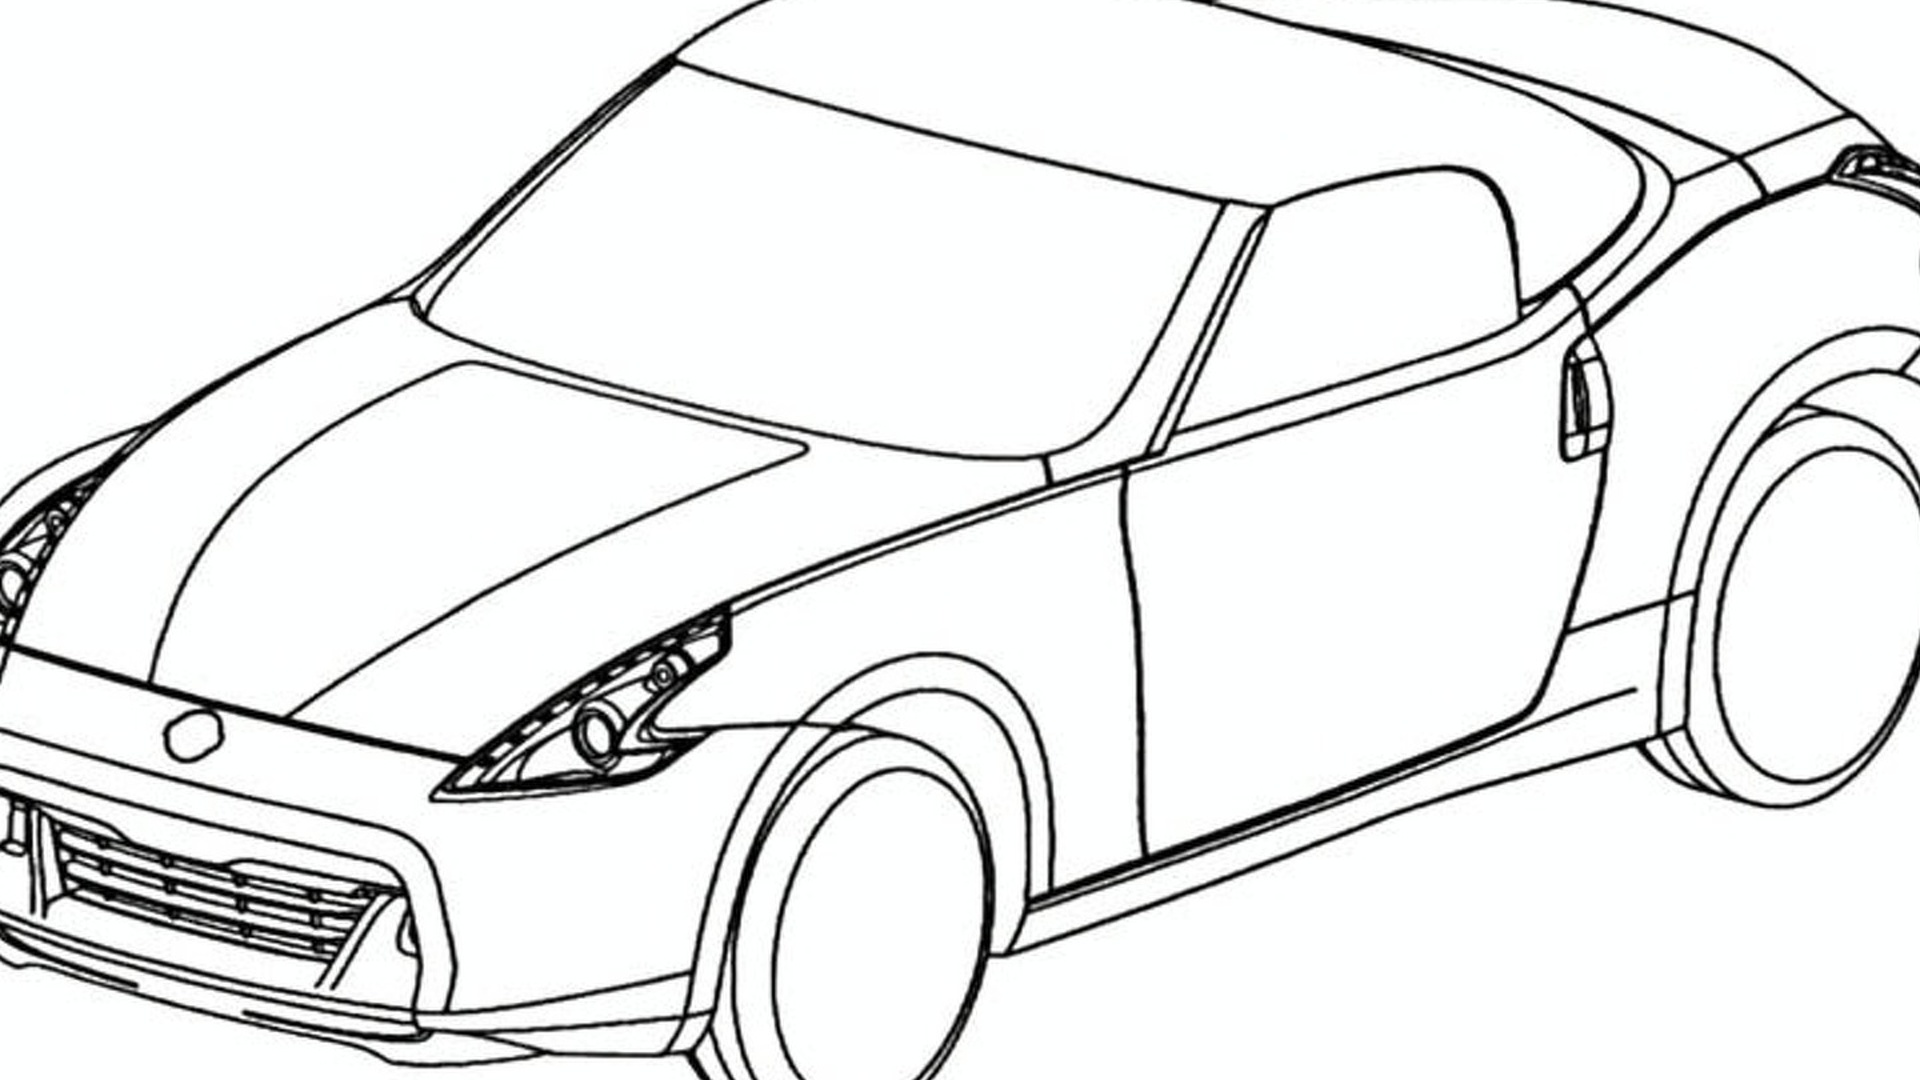 Nissan Skyline Drawing At Getdrawings